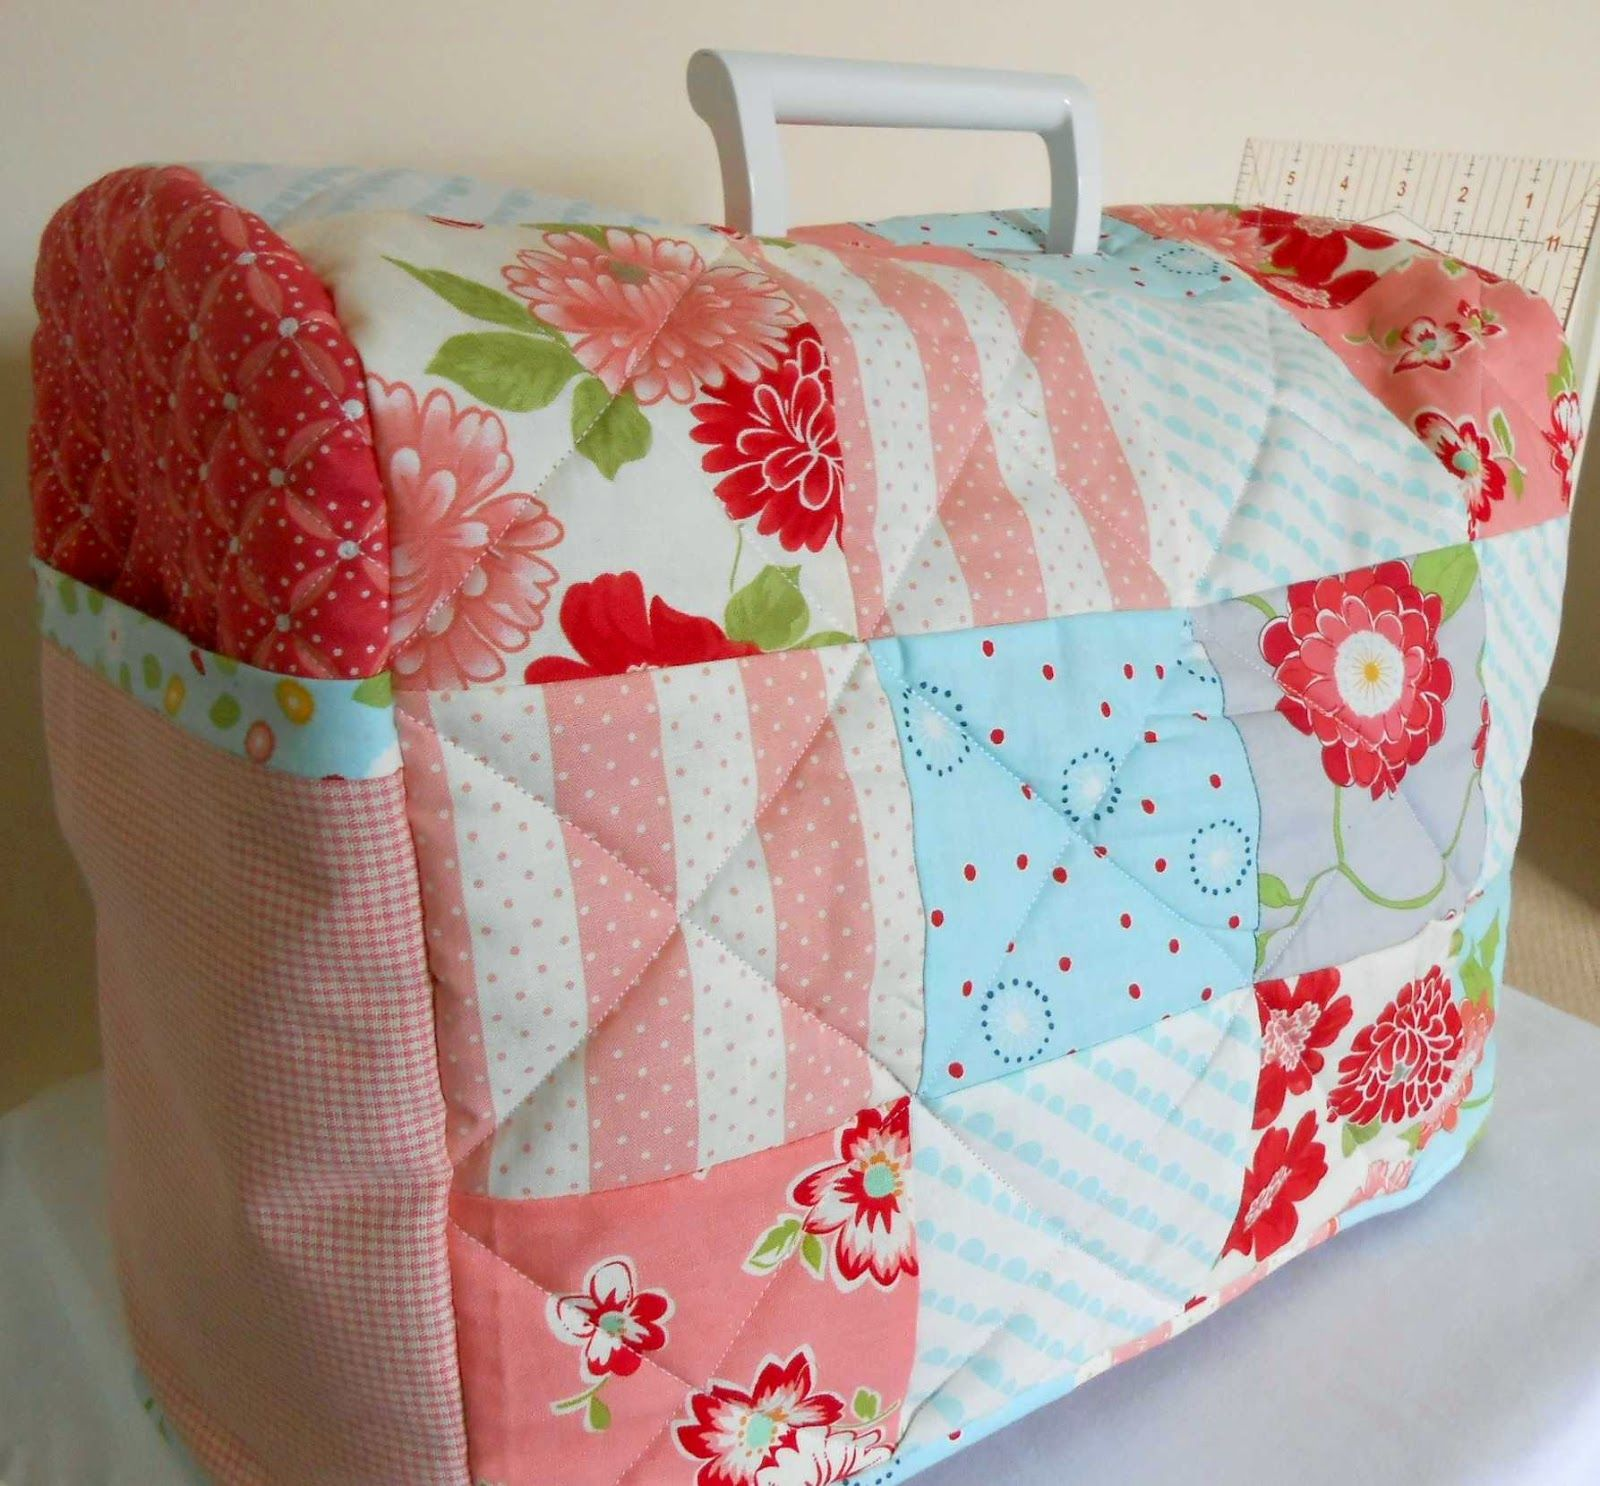 My new patchwork sewing machine cosy complete with end pockets the patchsmith across the pond sewing machine cover tutorialfree pattern original pdf for bernina this is adapted for husqvarna jeuxipadfo Choice Image